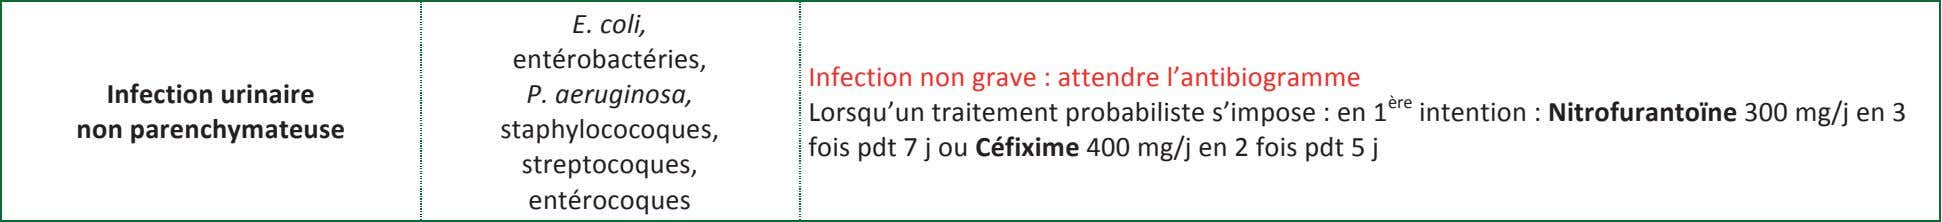 E. coli, entérobactéries, Infection non grave : attendre l'antibiogramme Infection urinaire P. aeruginosa, non